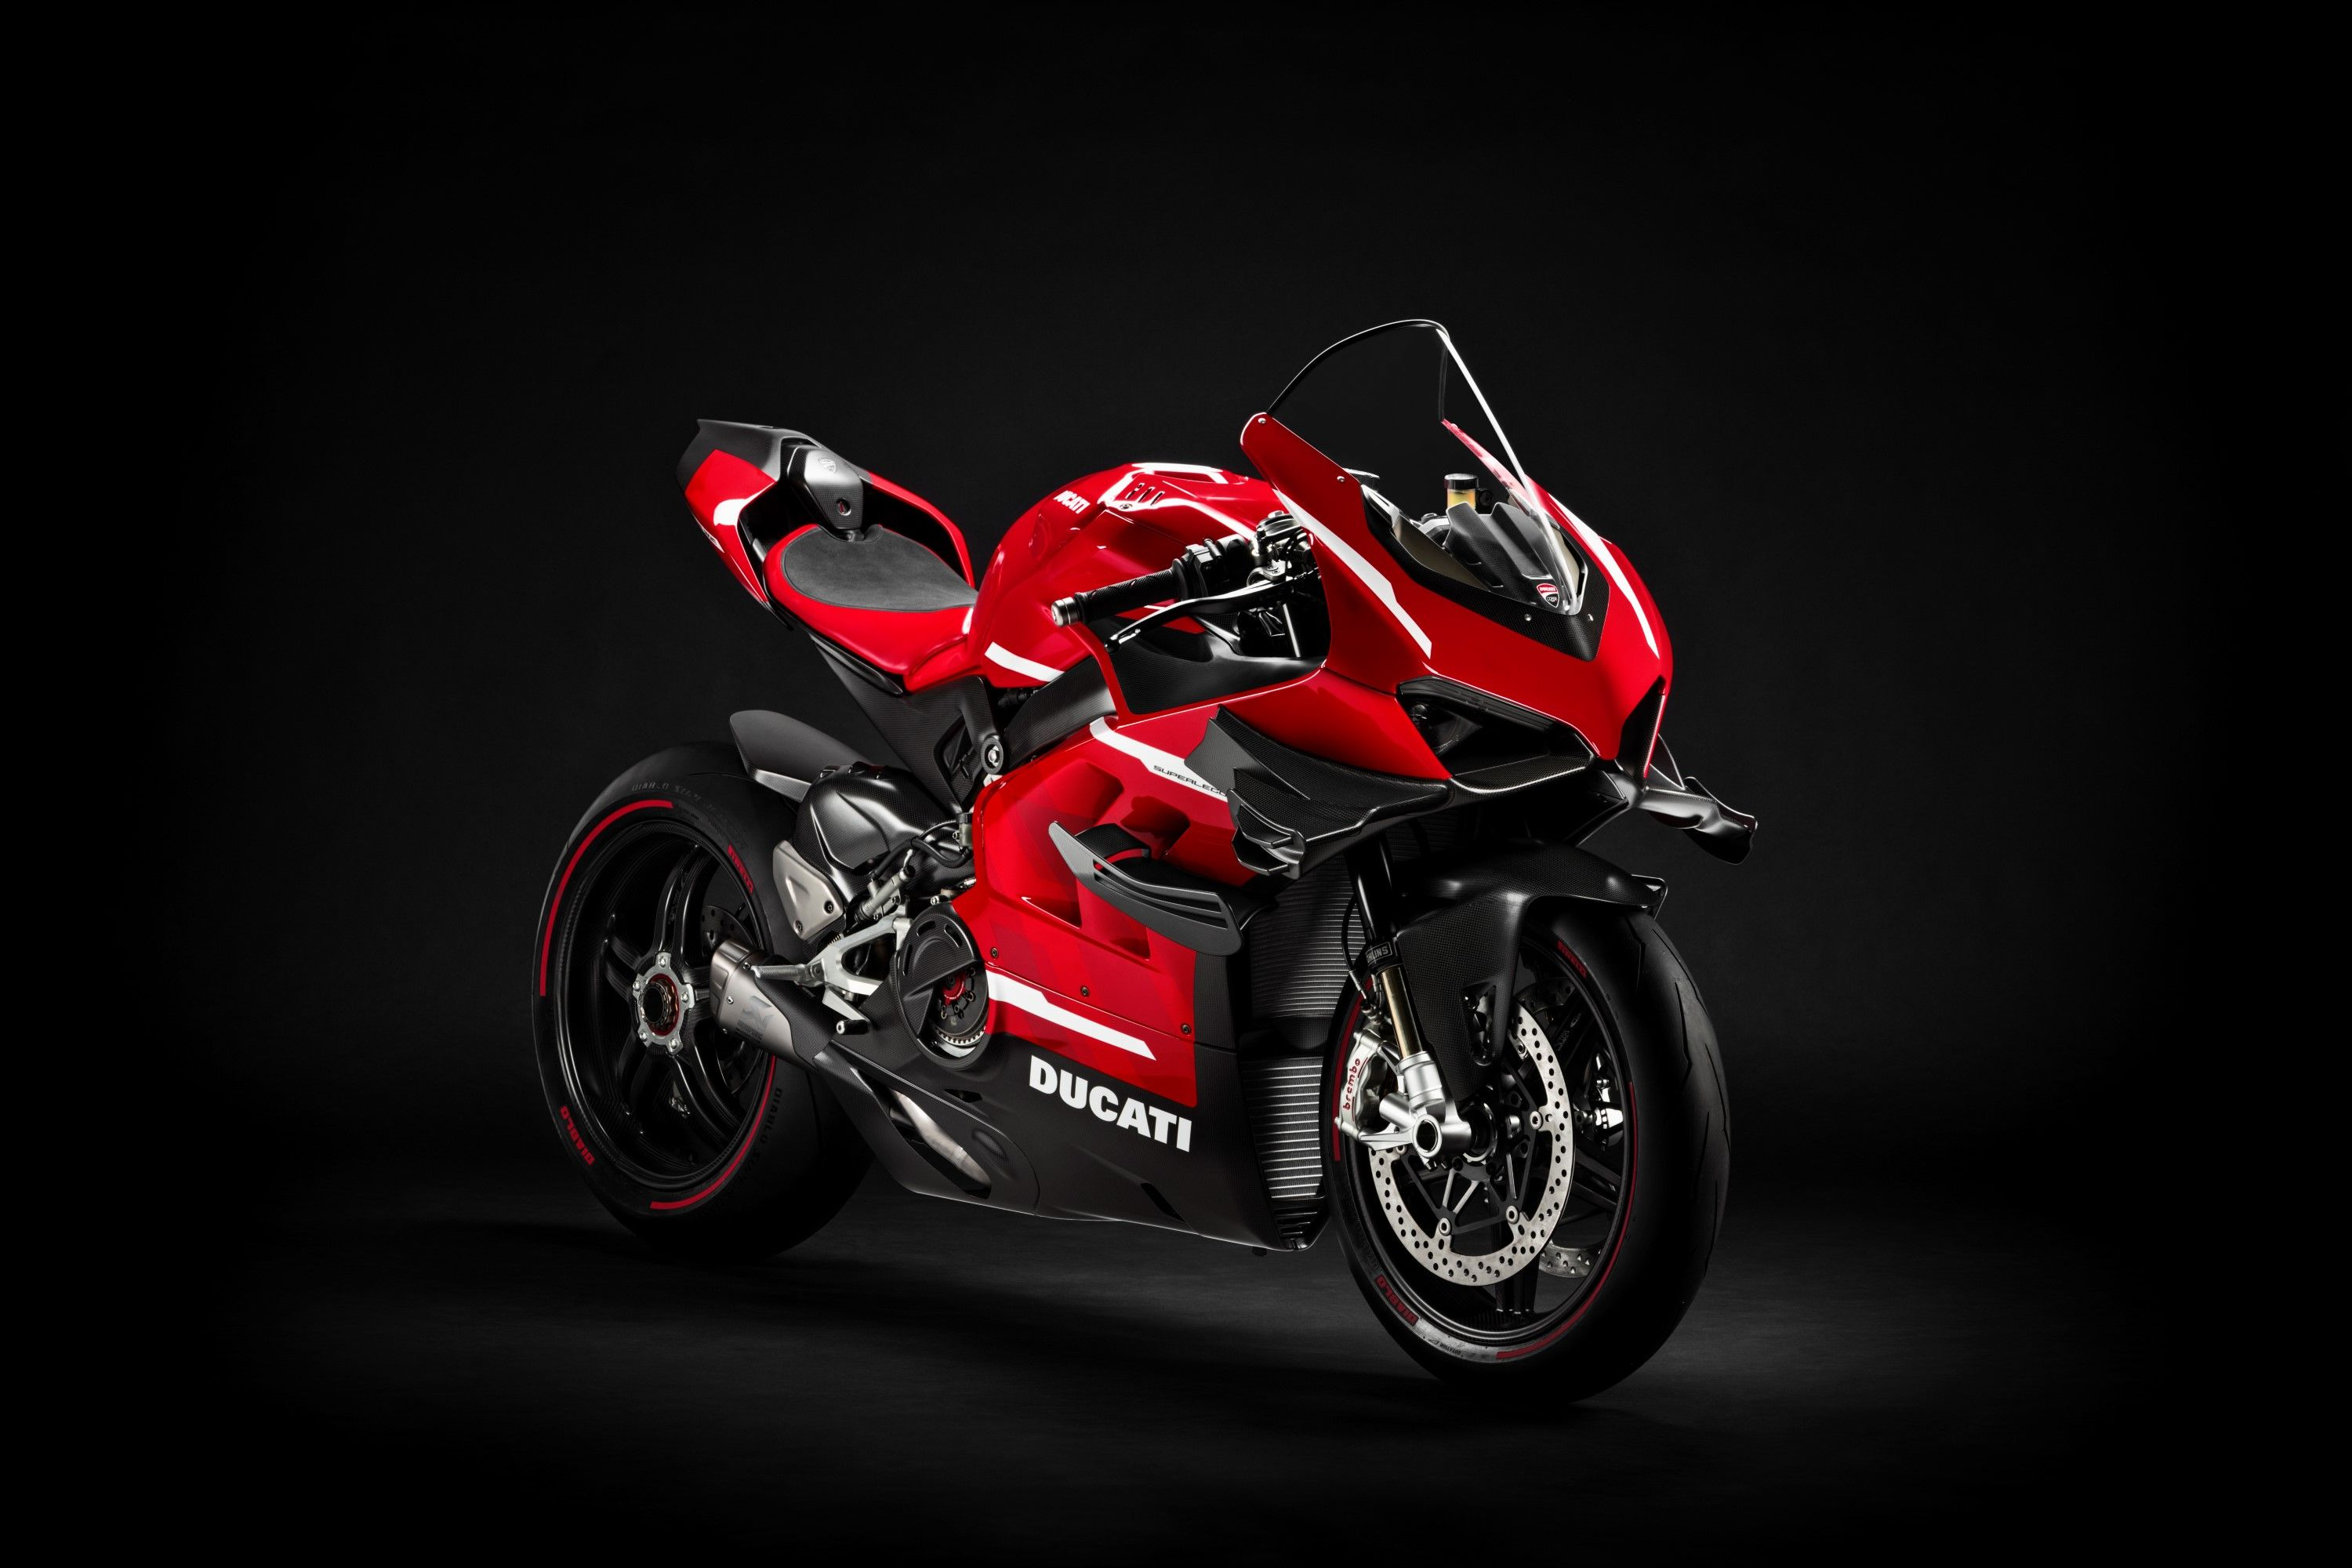 Ducati Finally Unleashed Their Most Extreme Production Motorcycle